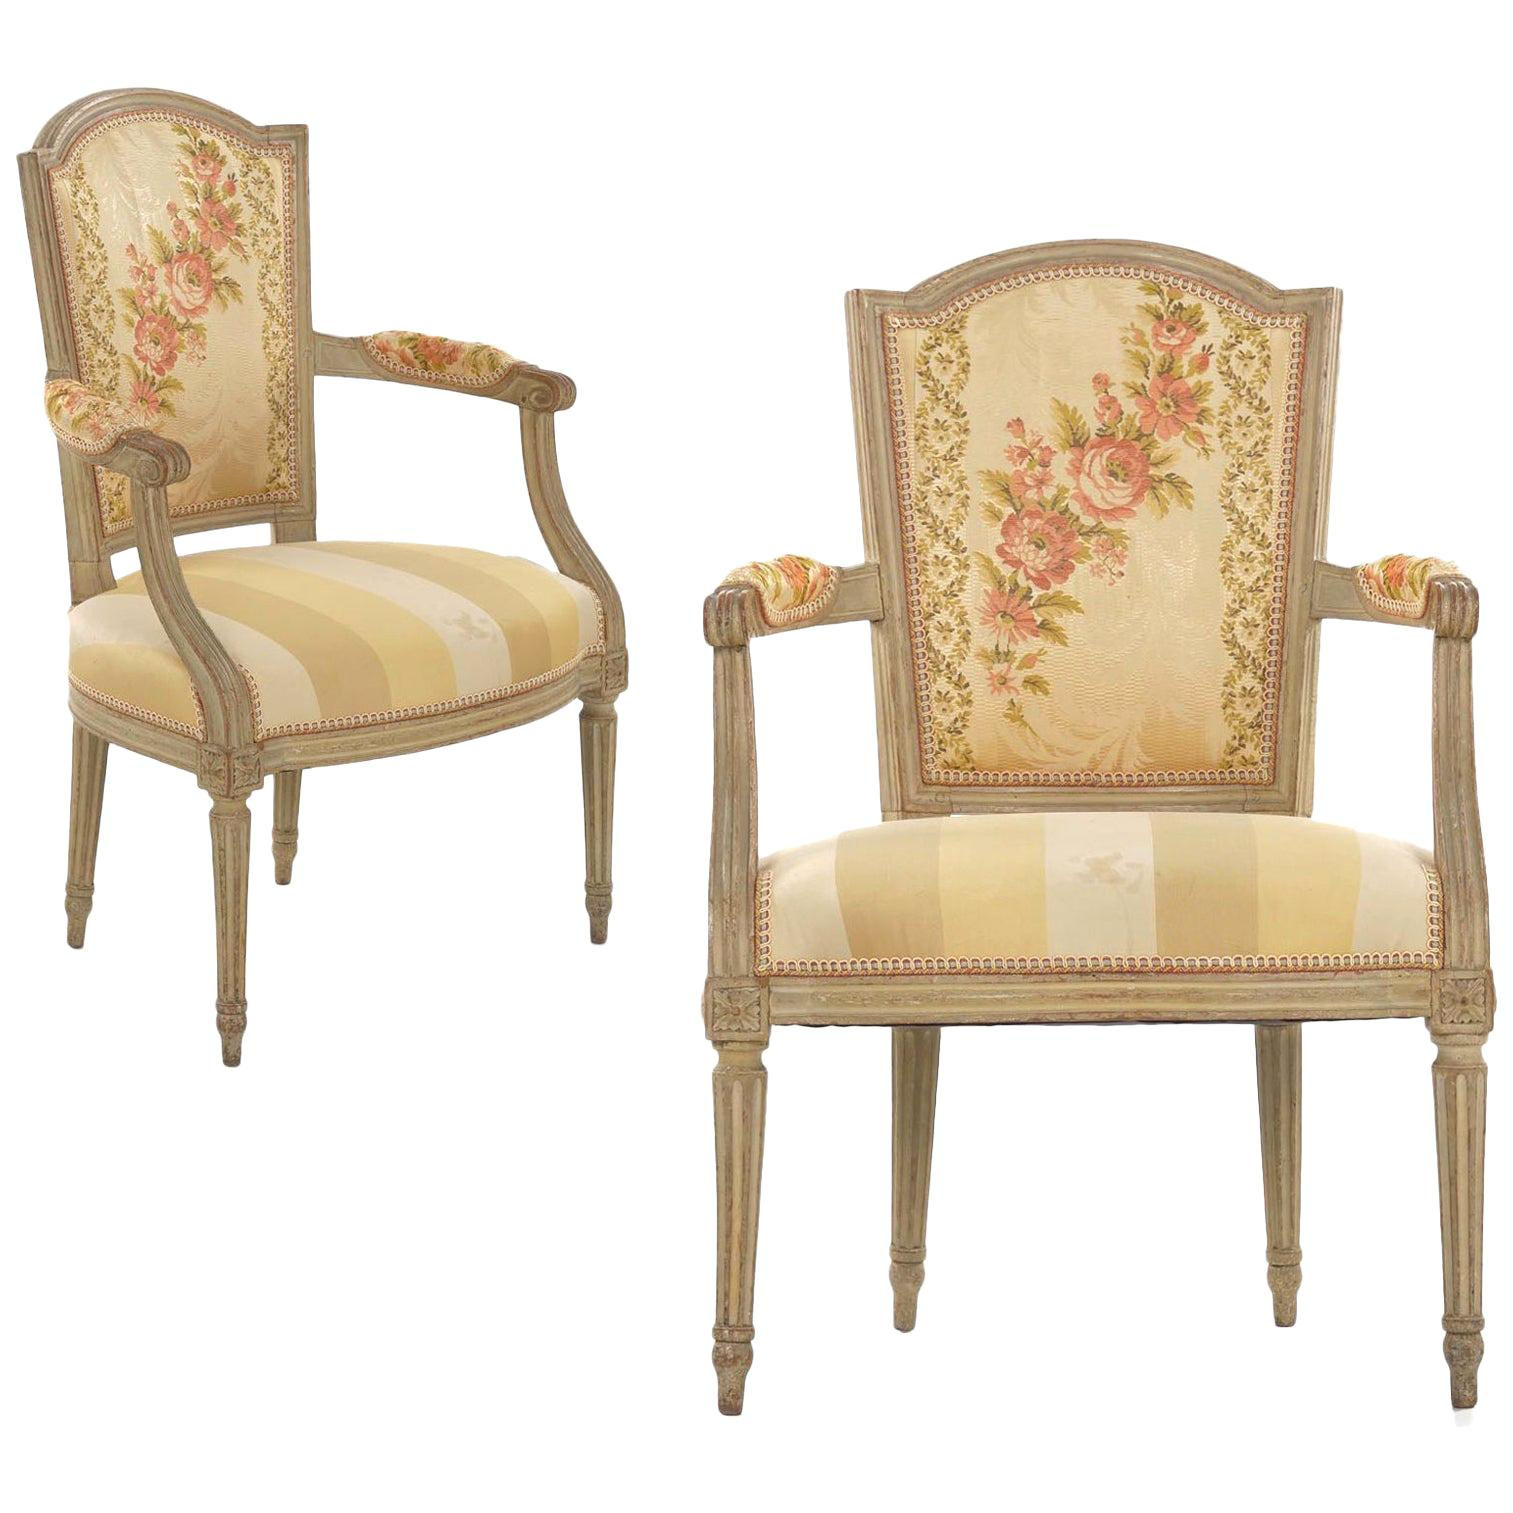 Early French Louis XVI Painted Antique Armchairs, a Pair